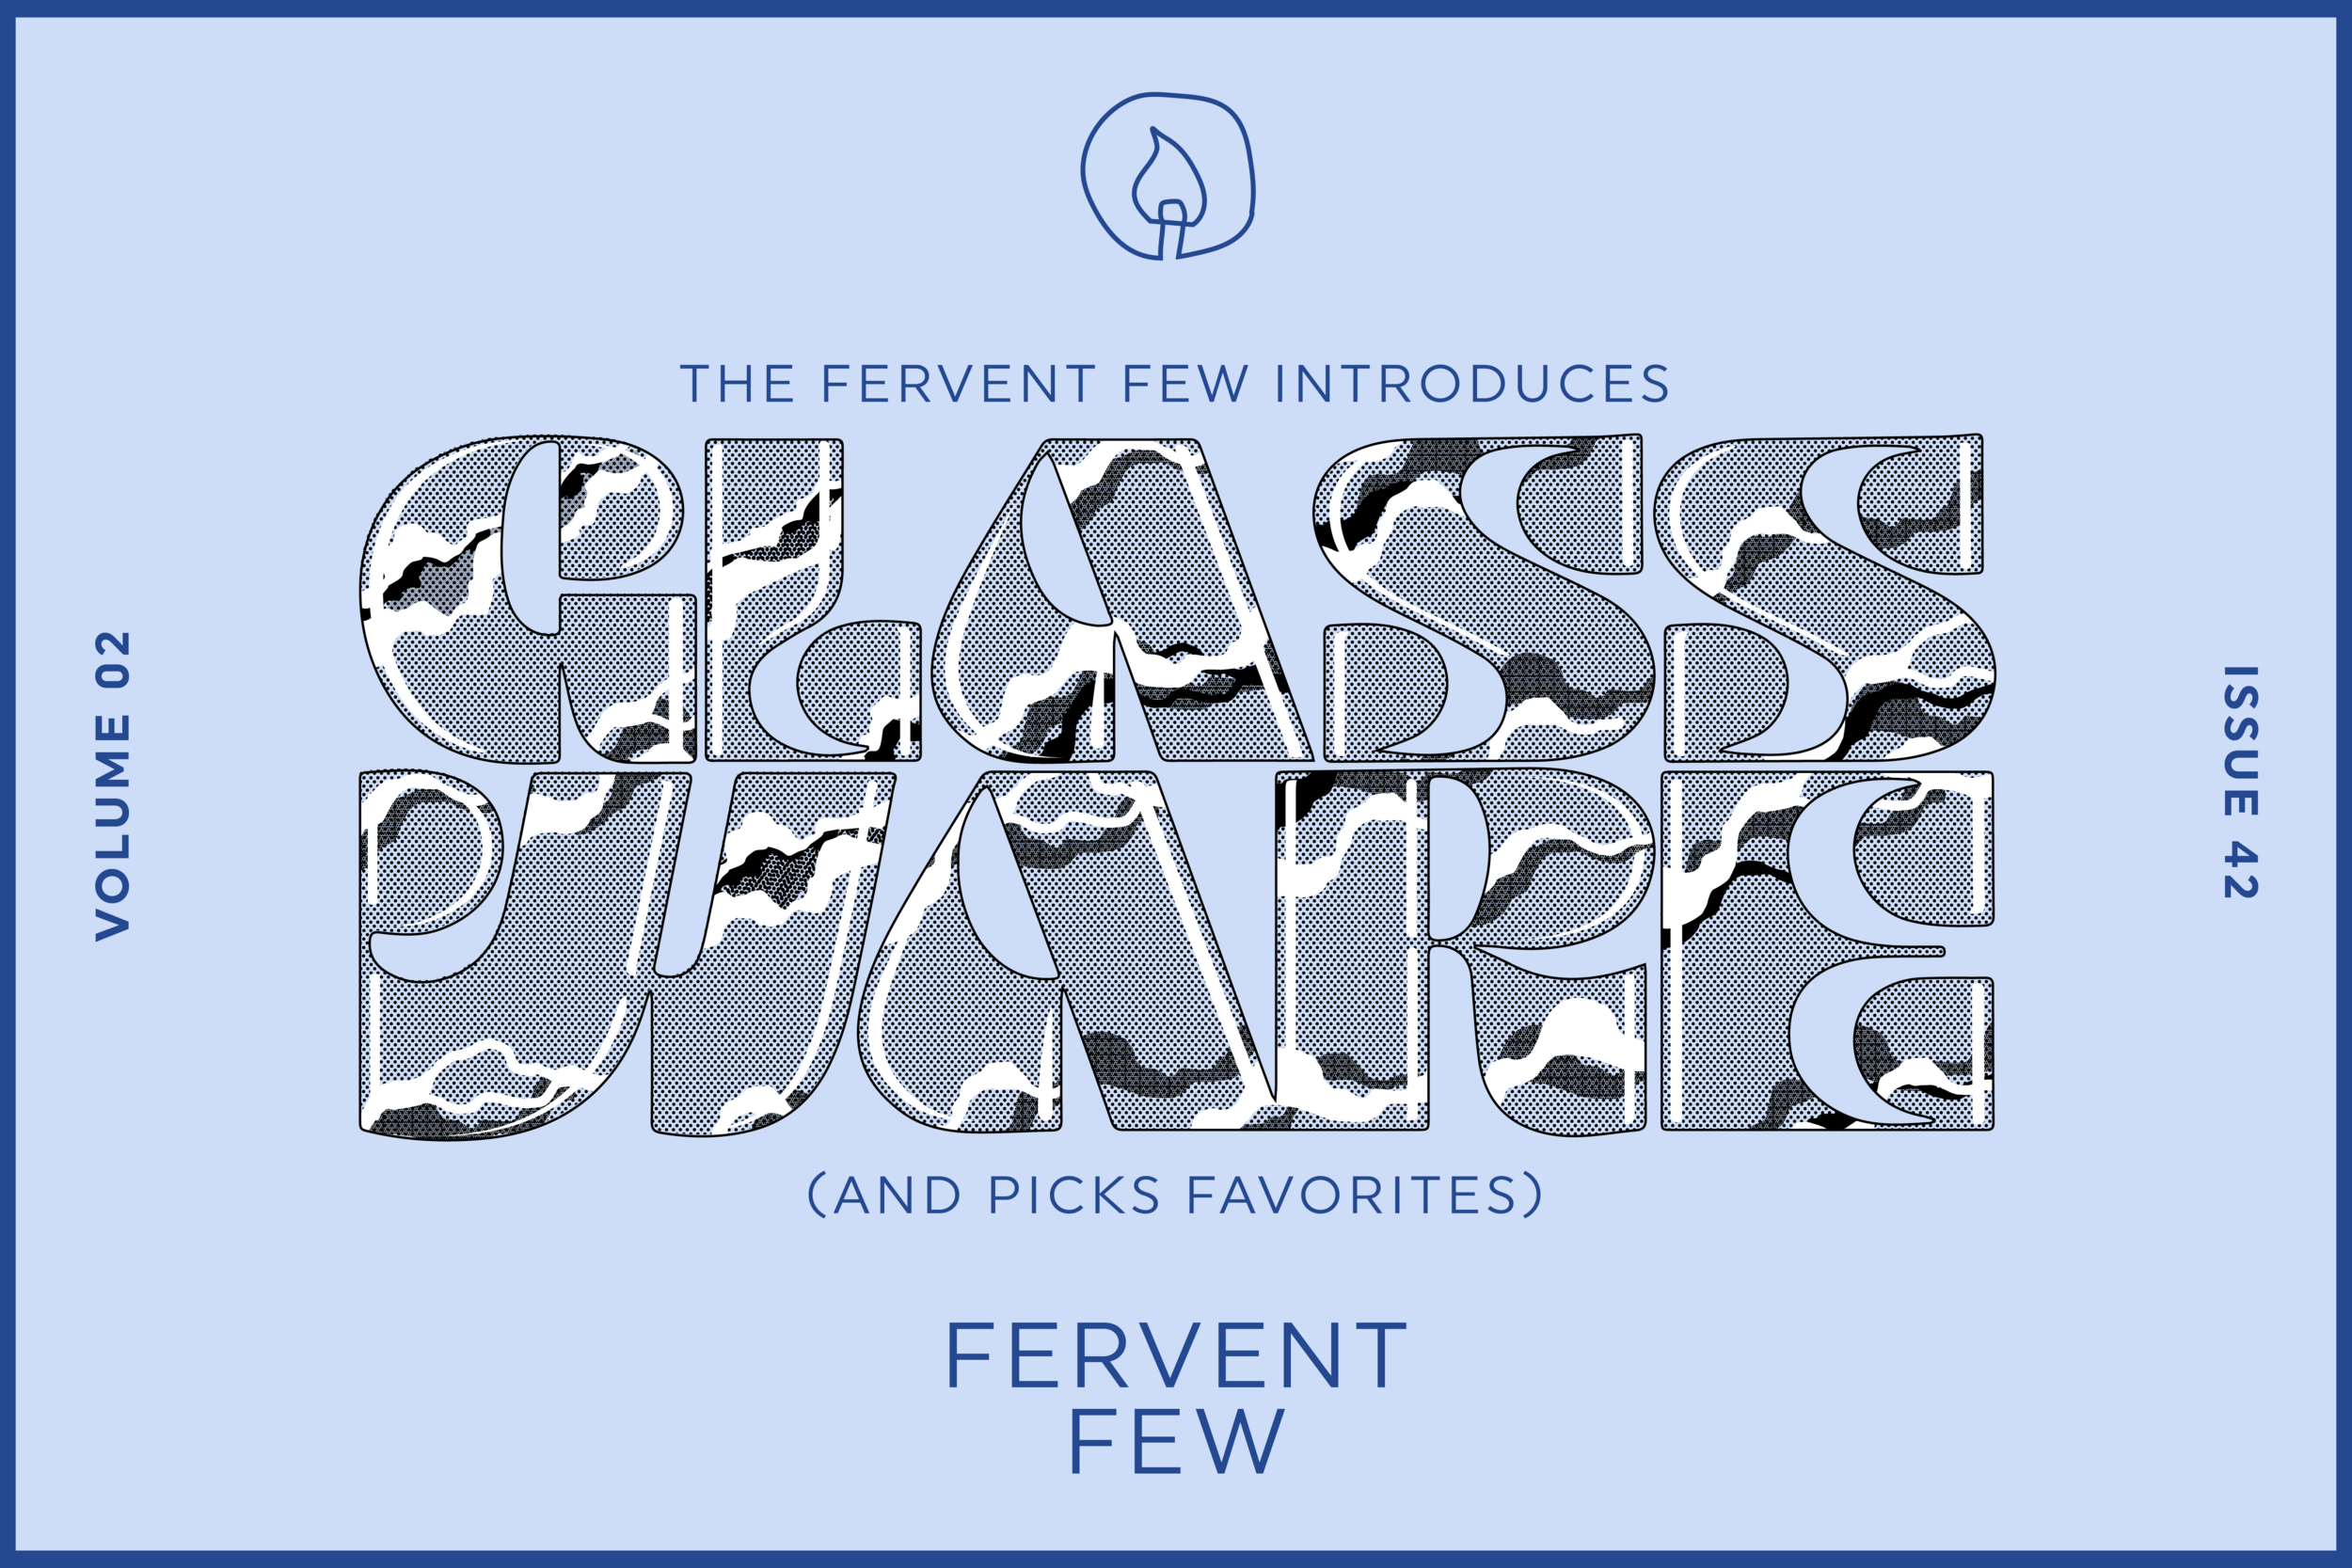 d638305303e The Fervent Few Introduces Glassware (and Picks Favorites) — Good ...